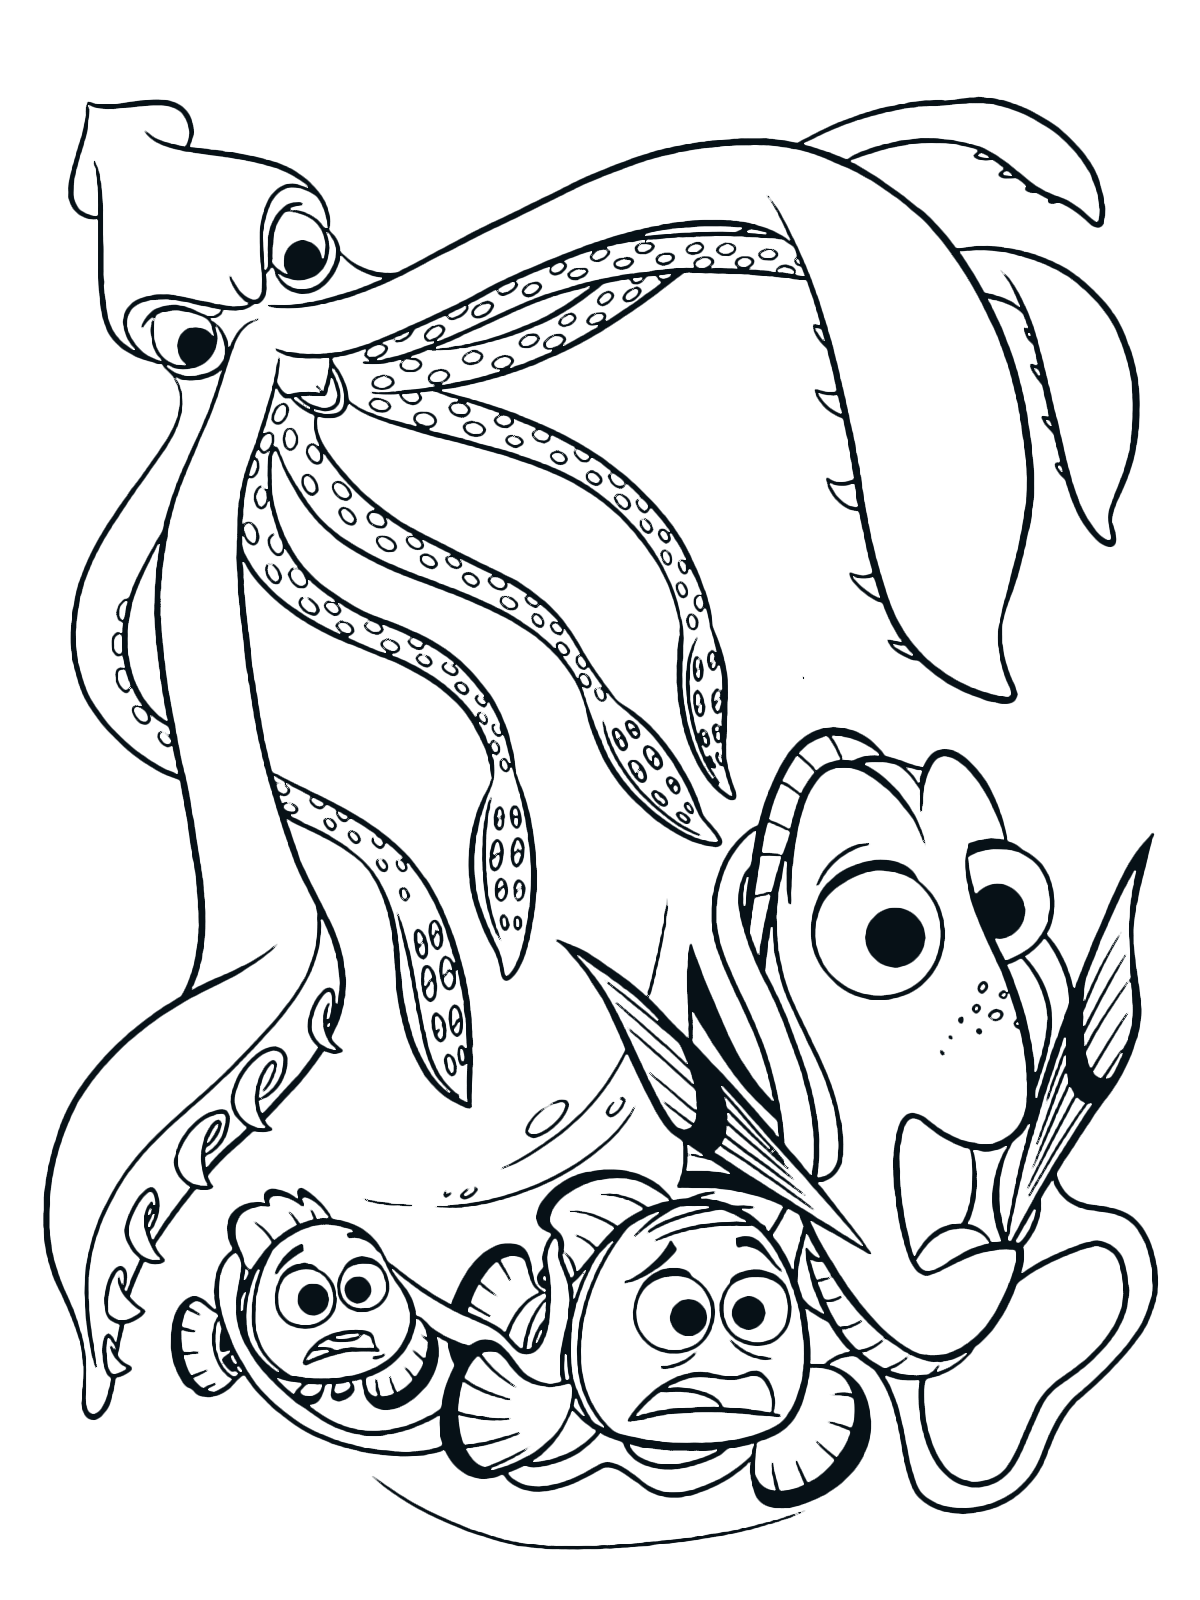 Finding Dory Coloring Page Dory Marlin And Nemo Are Attacked By A Giant Squid Nemo Coloring Pages Finding Nemo Coloring Pages Cartoon Coloring Pages